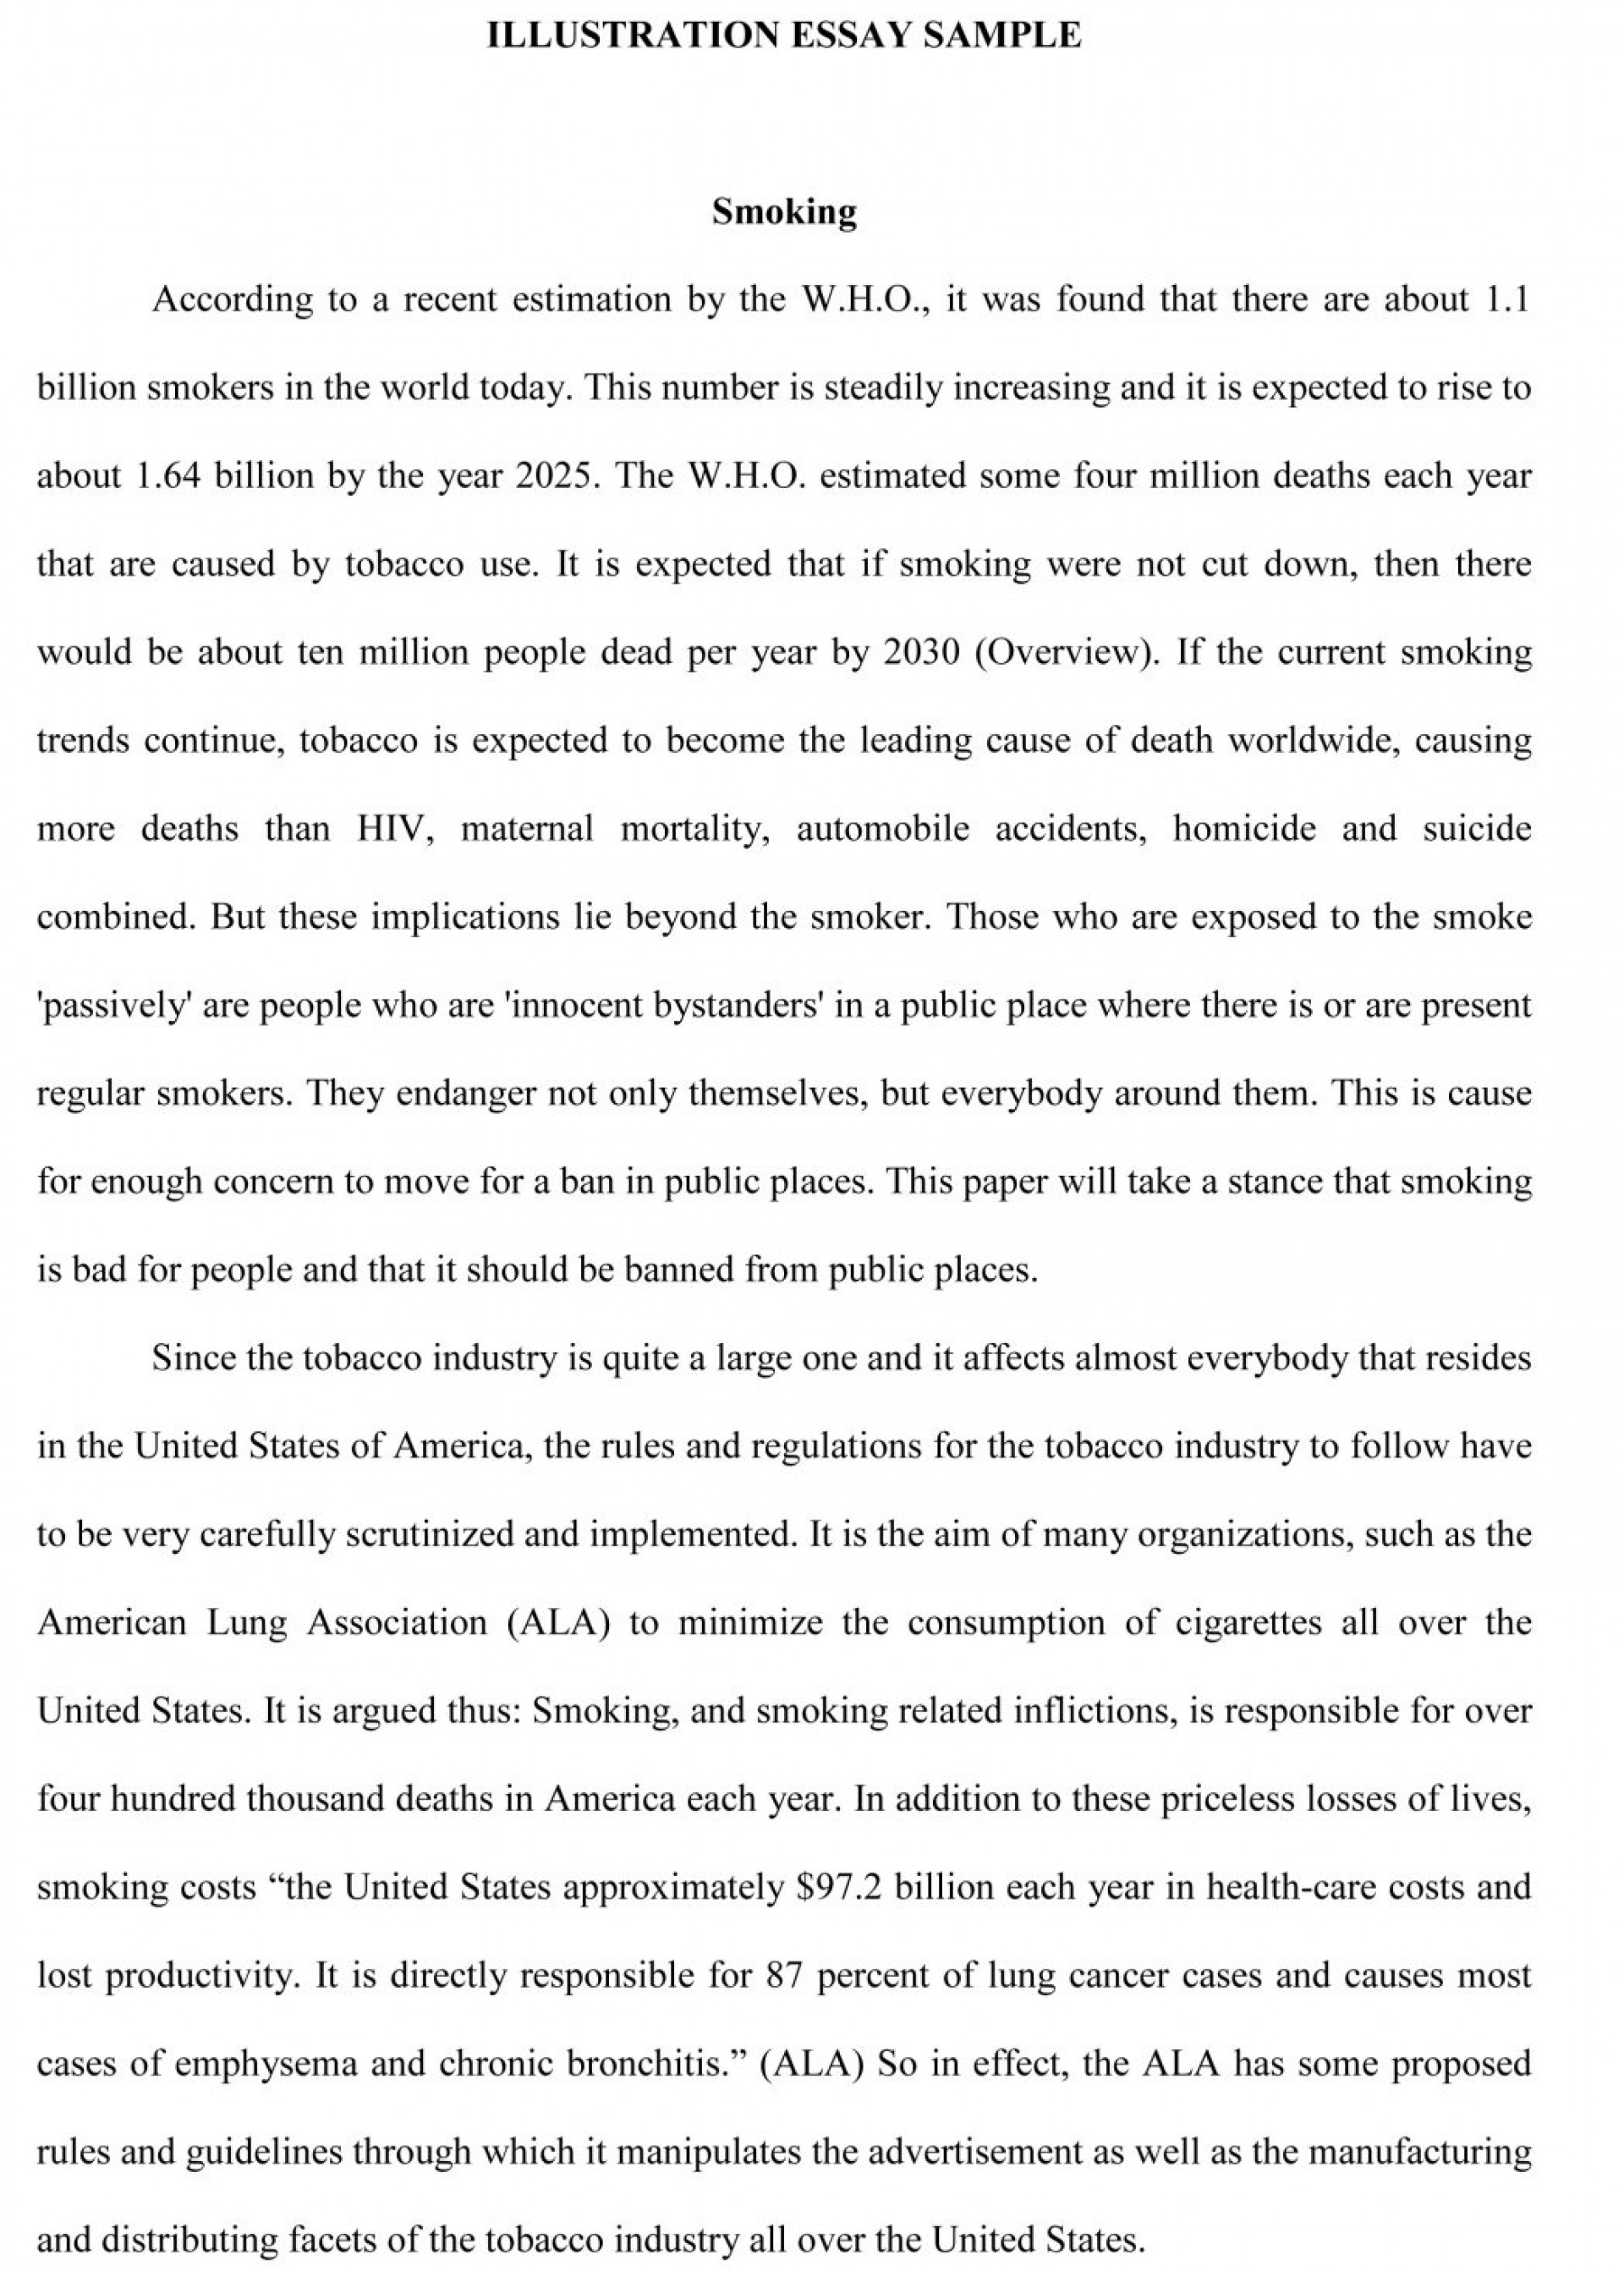 013 Essayxample Apply Texas Topics Fahrenheit Fahrenheitessay College Application Illustration Sam Cliche Promptxamples Question Rutgers Good To Avoid 1048x1466 Archaicawful Essay Prompt C Example Topic Examples A 1920